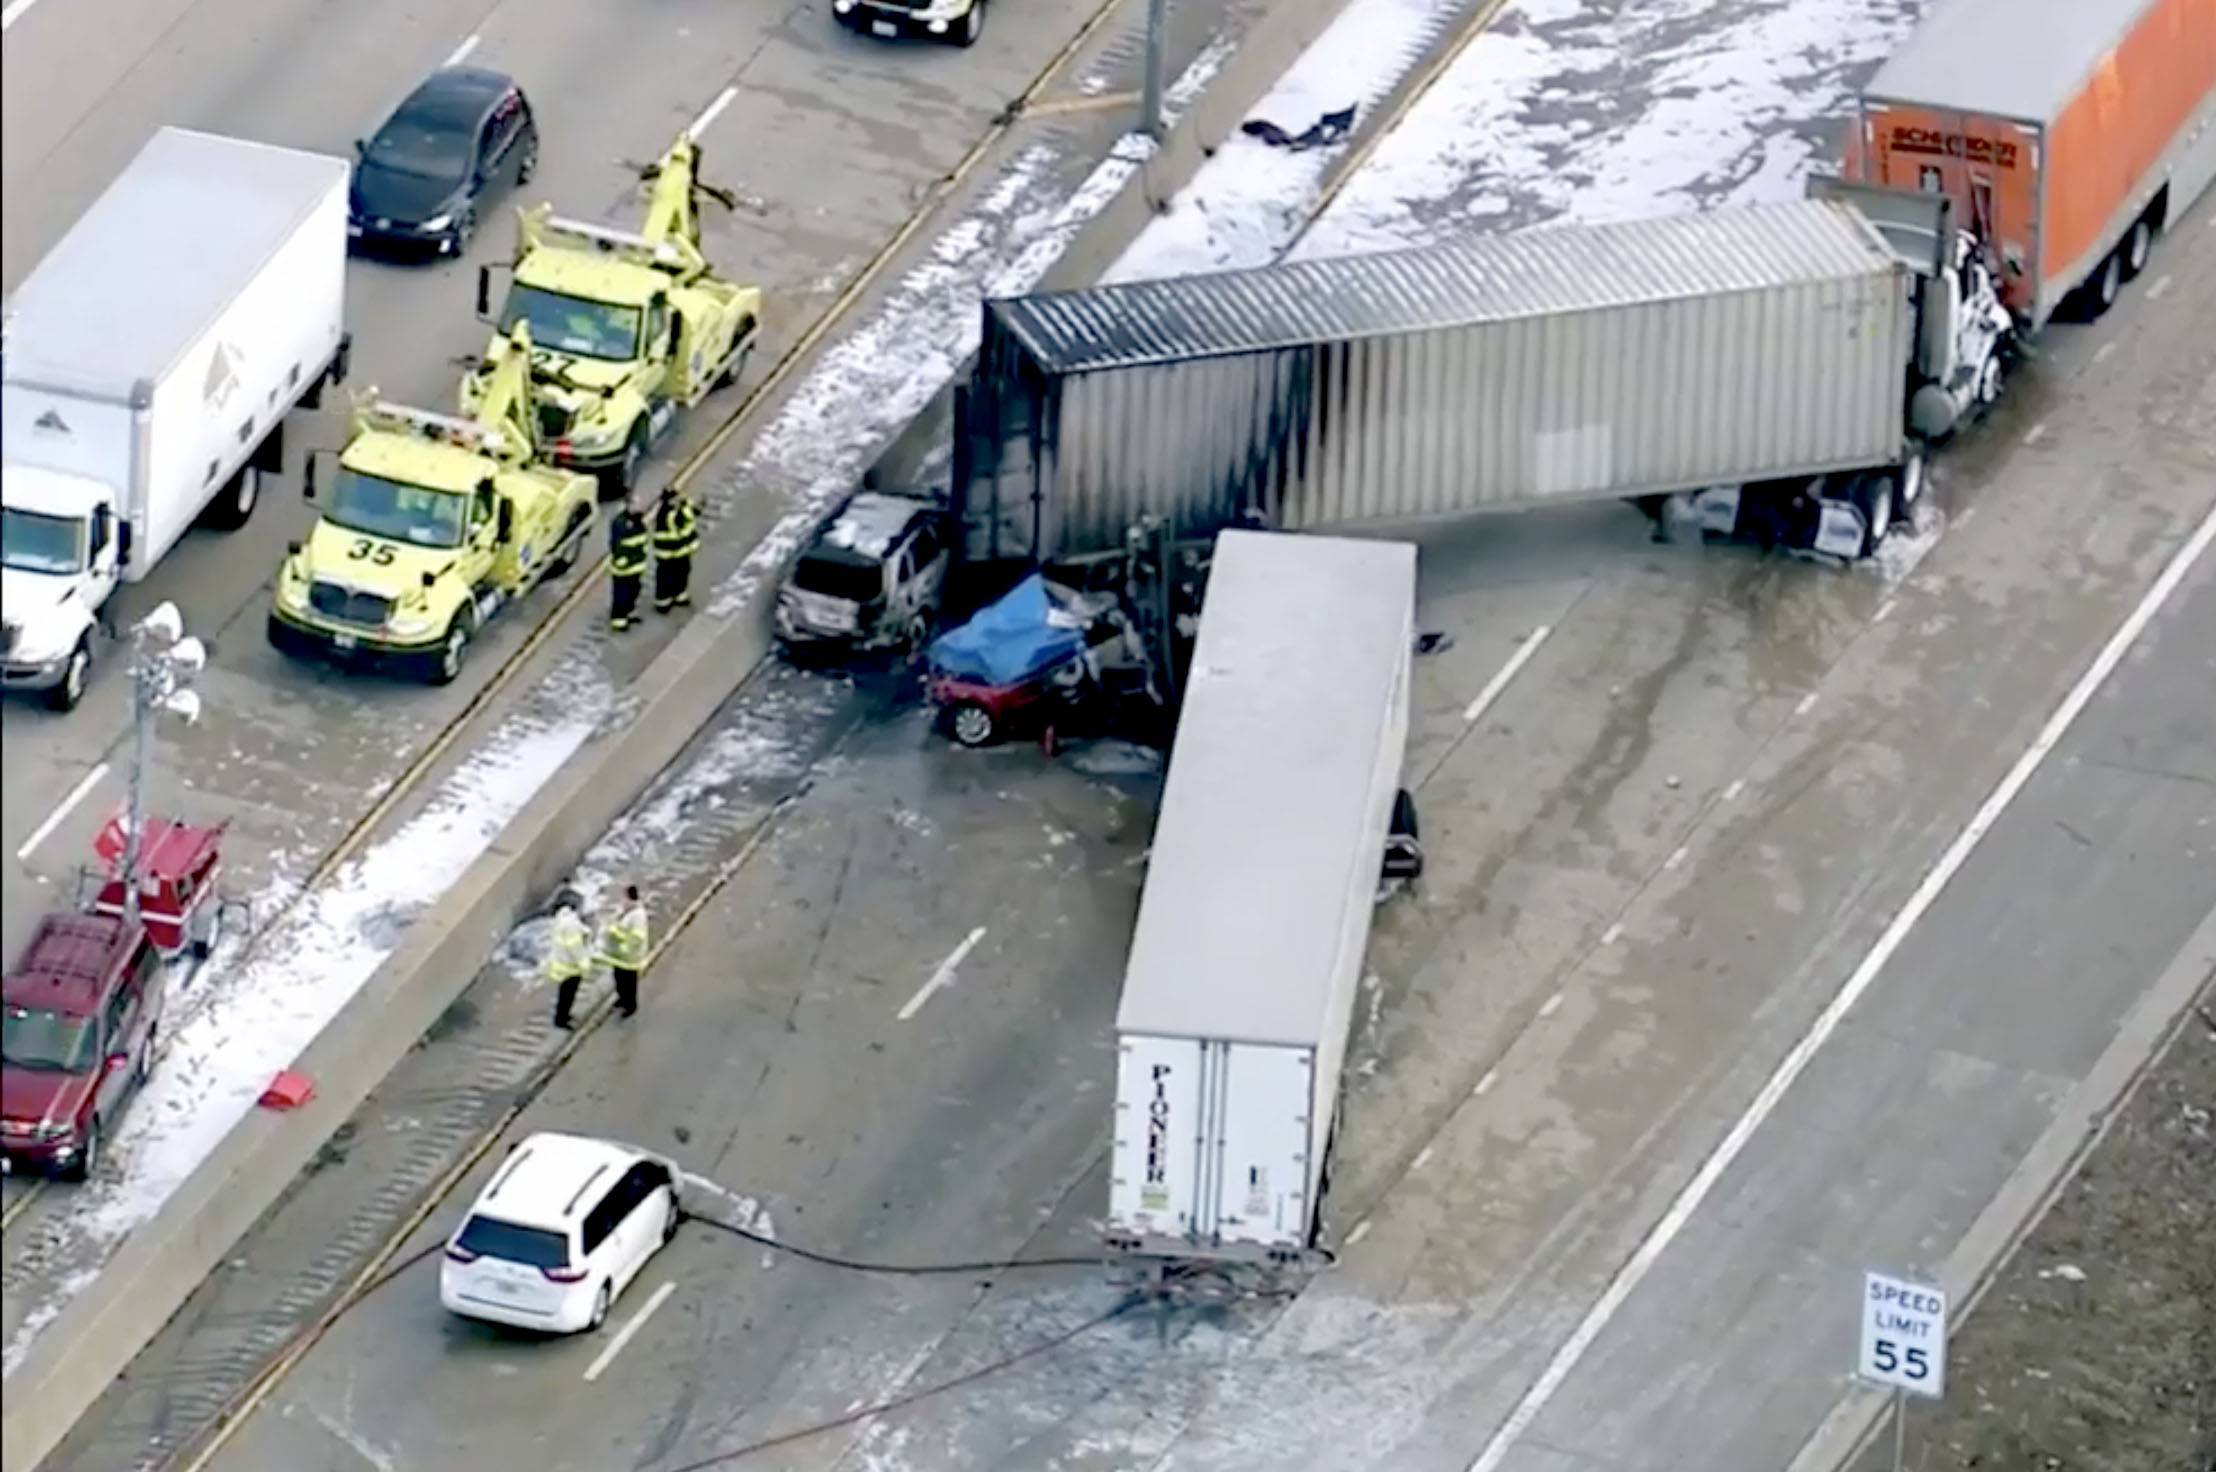 An Indiana man was killed in a seven-vehicle crash Thursday on inbound Interstate 290 near Elmhurst, the Cook County medical examiner's office said.